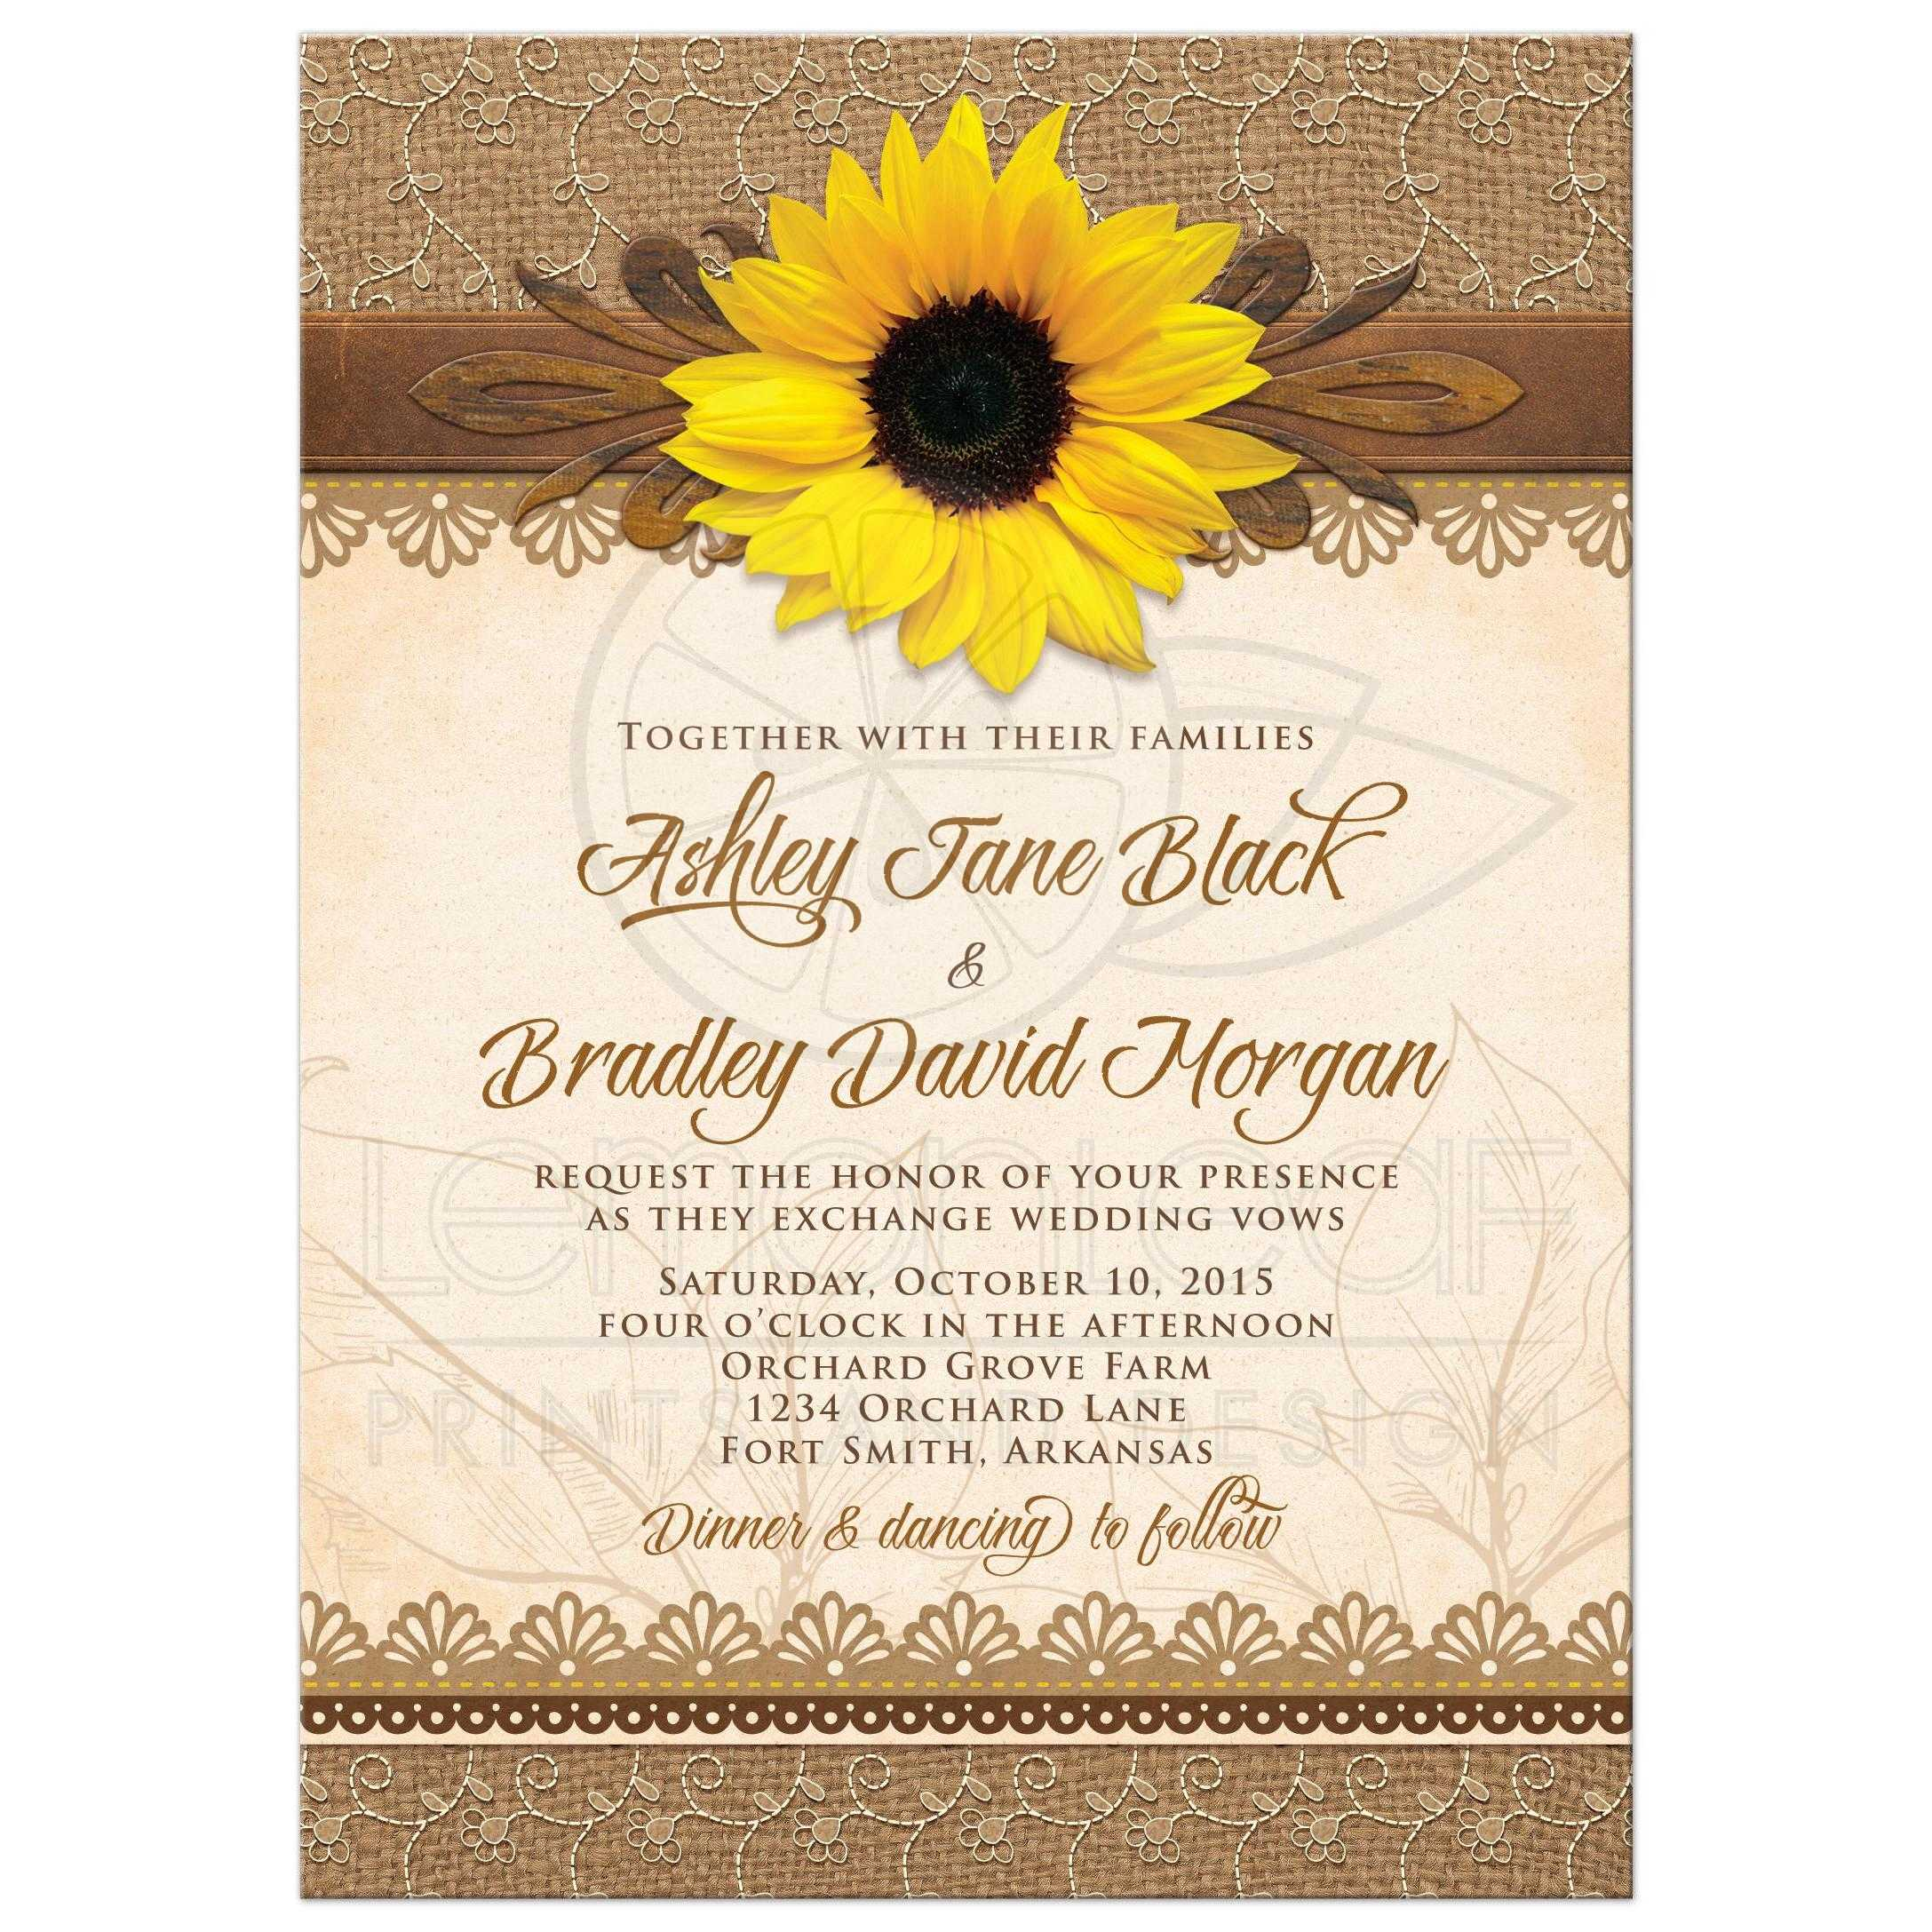 Wedding Invitation Rustic Sunflower Burlap Lace Wood